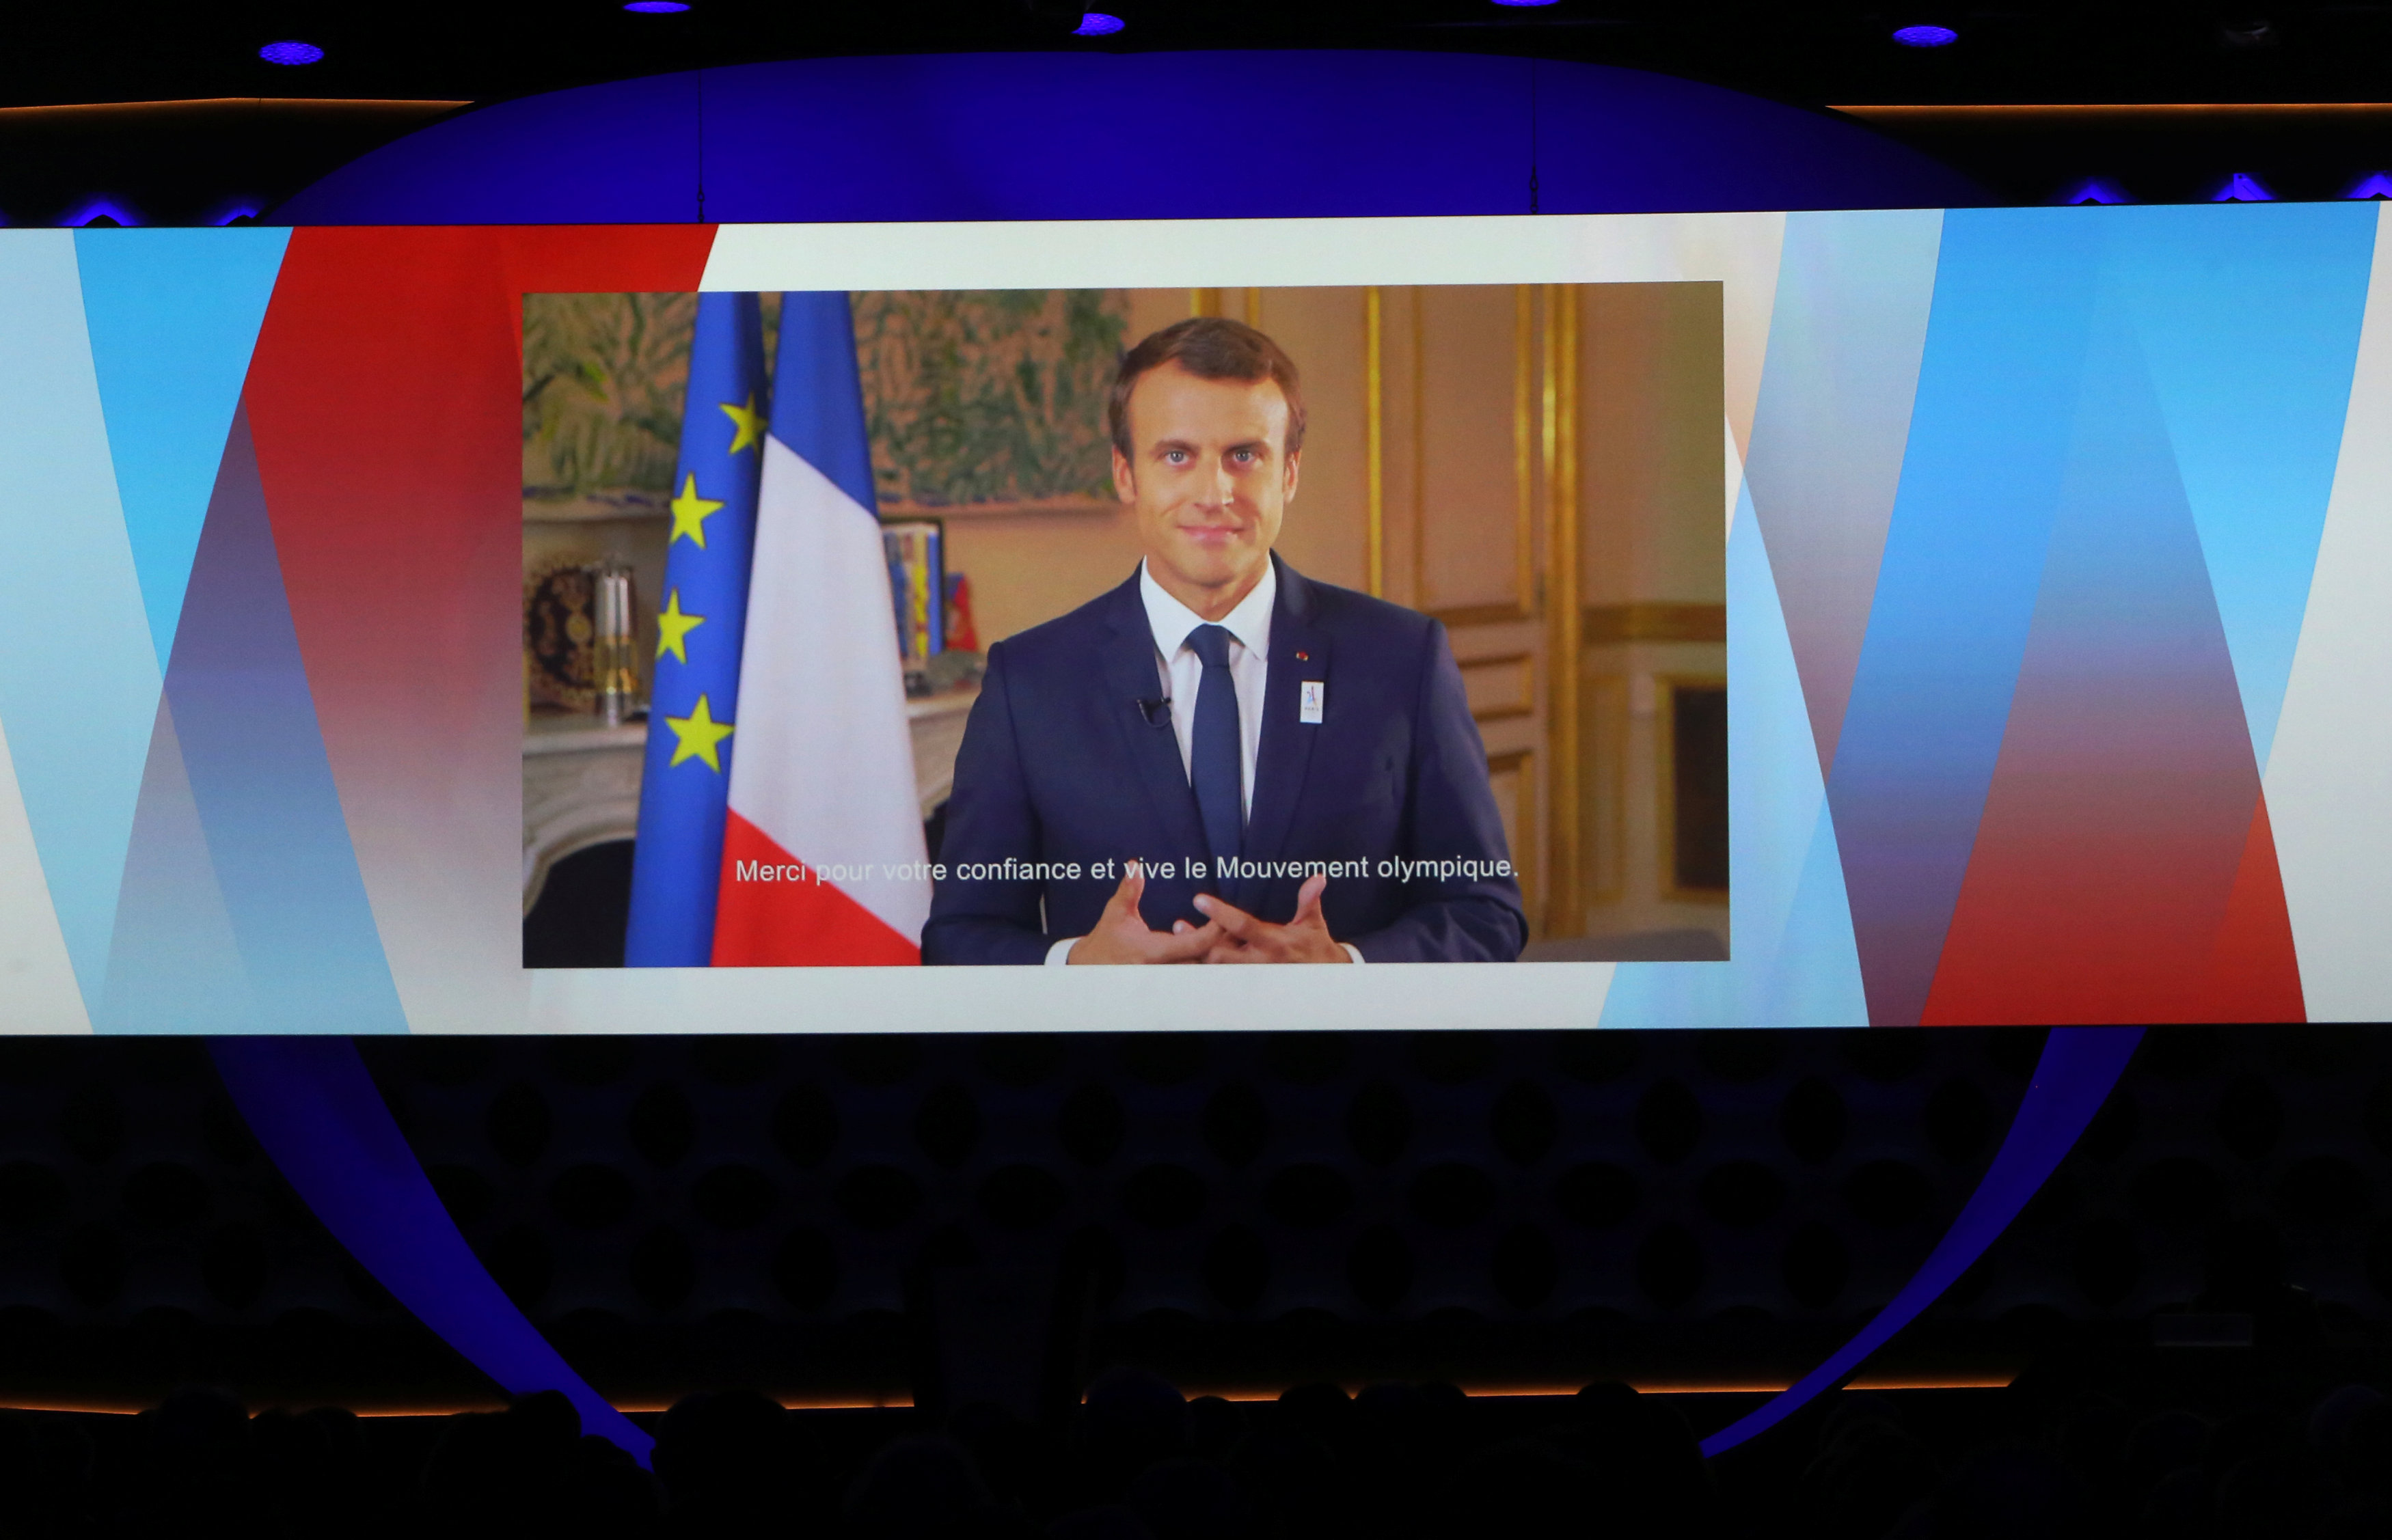 France's President Emmanuel Macron is seen on a screen as he delivers a video speech at the presentation of Paris 2024 at the 131st IOC session in Lima, Peru on Sept. 13, 2017. (REUTERS/Mariana Bazo)